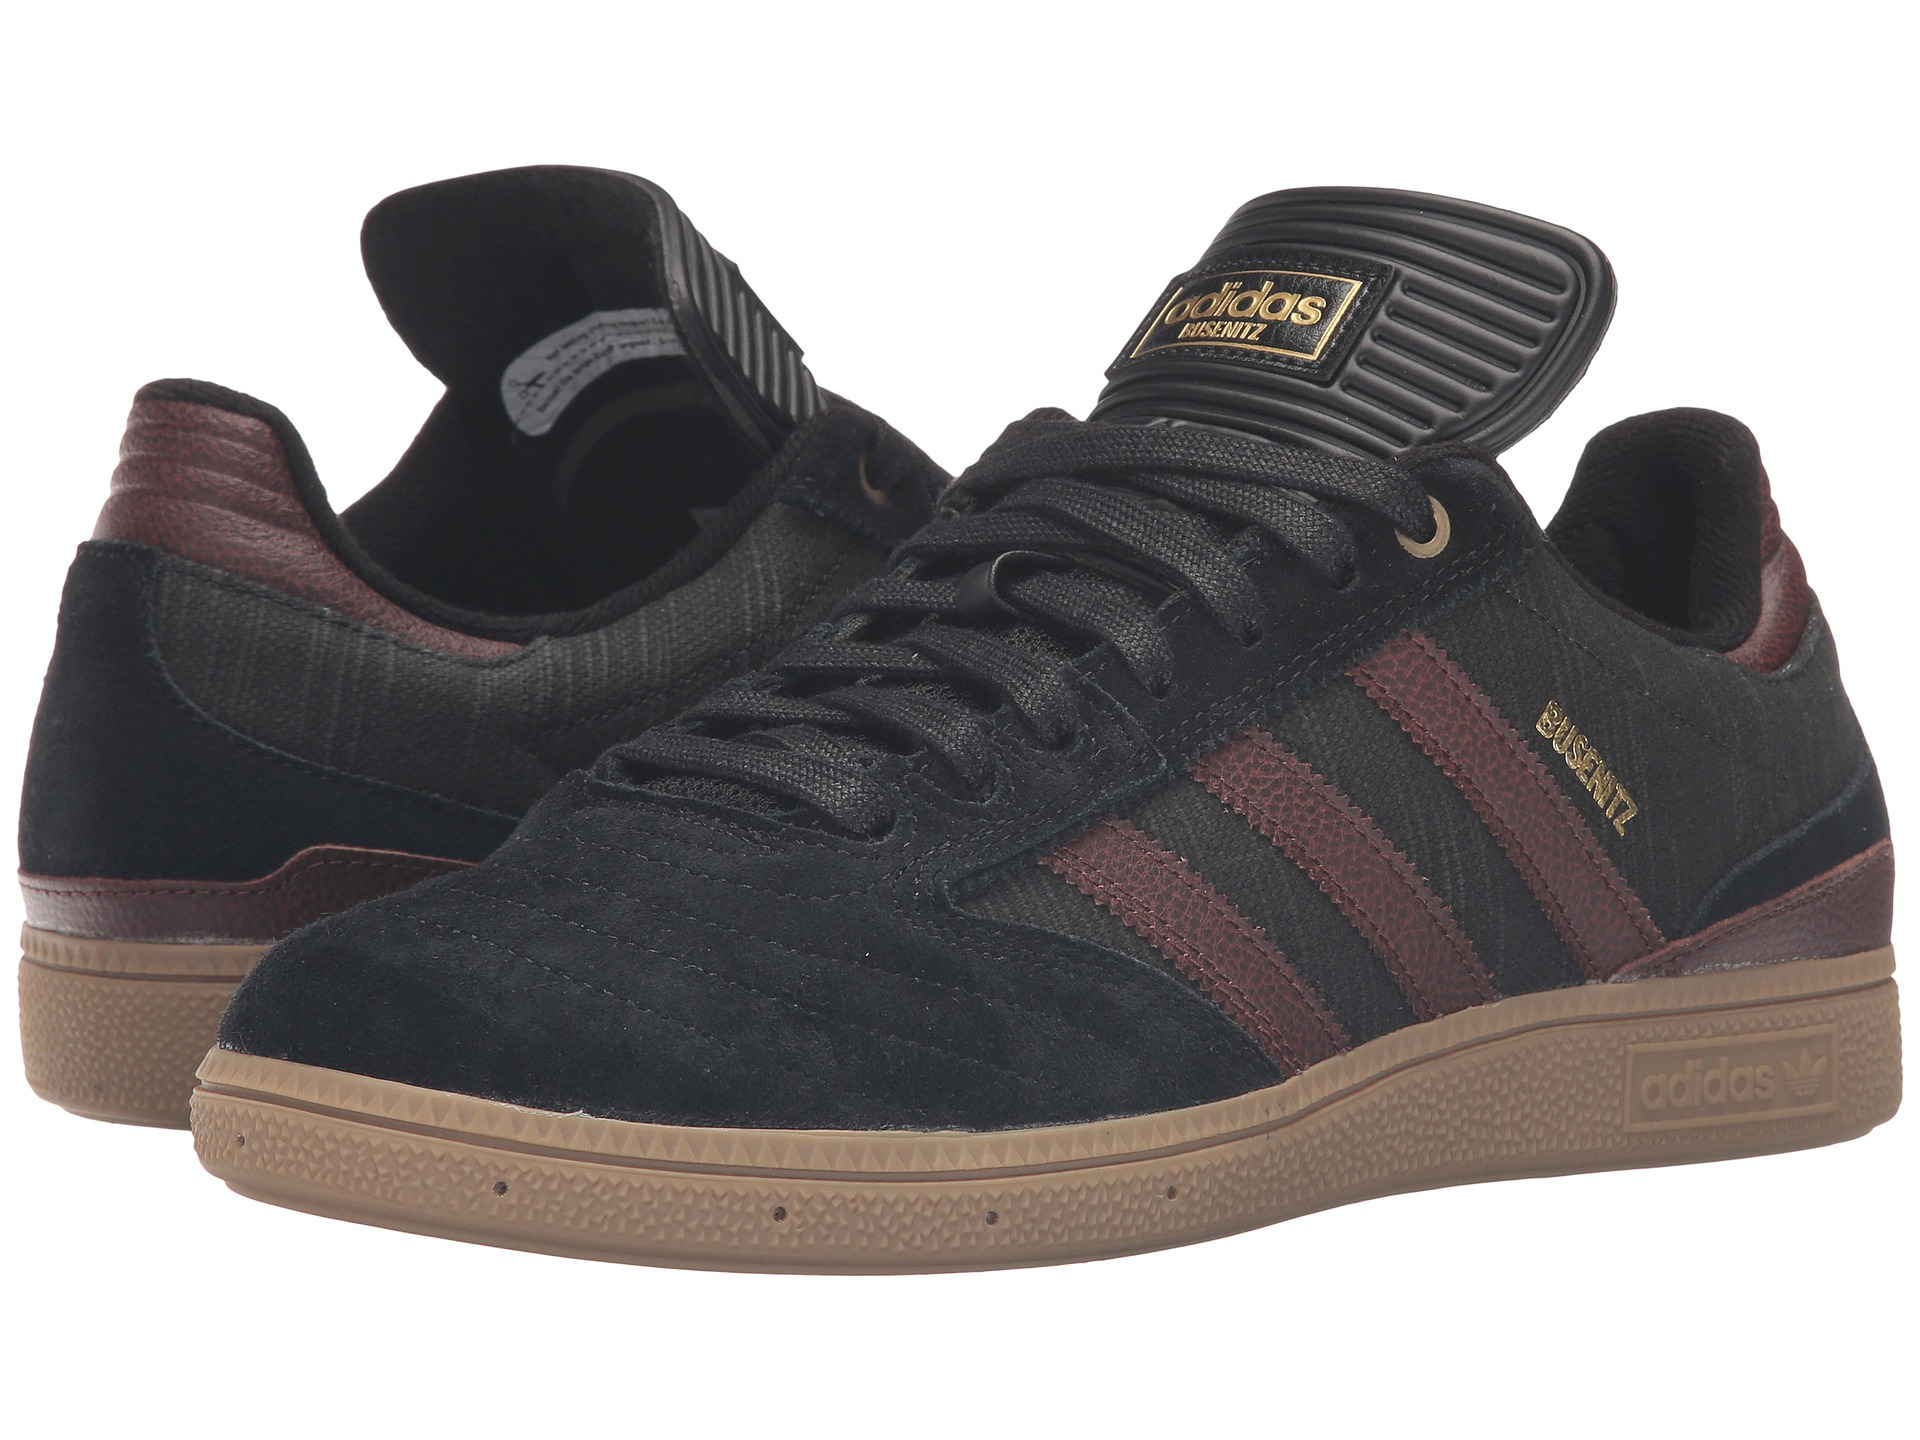 adidas Skateboarding Busenitz Classified at 6pm.com